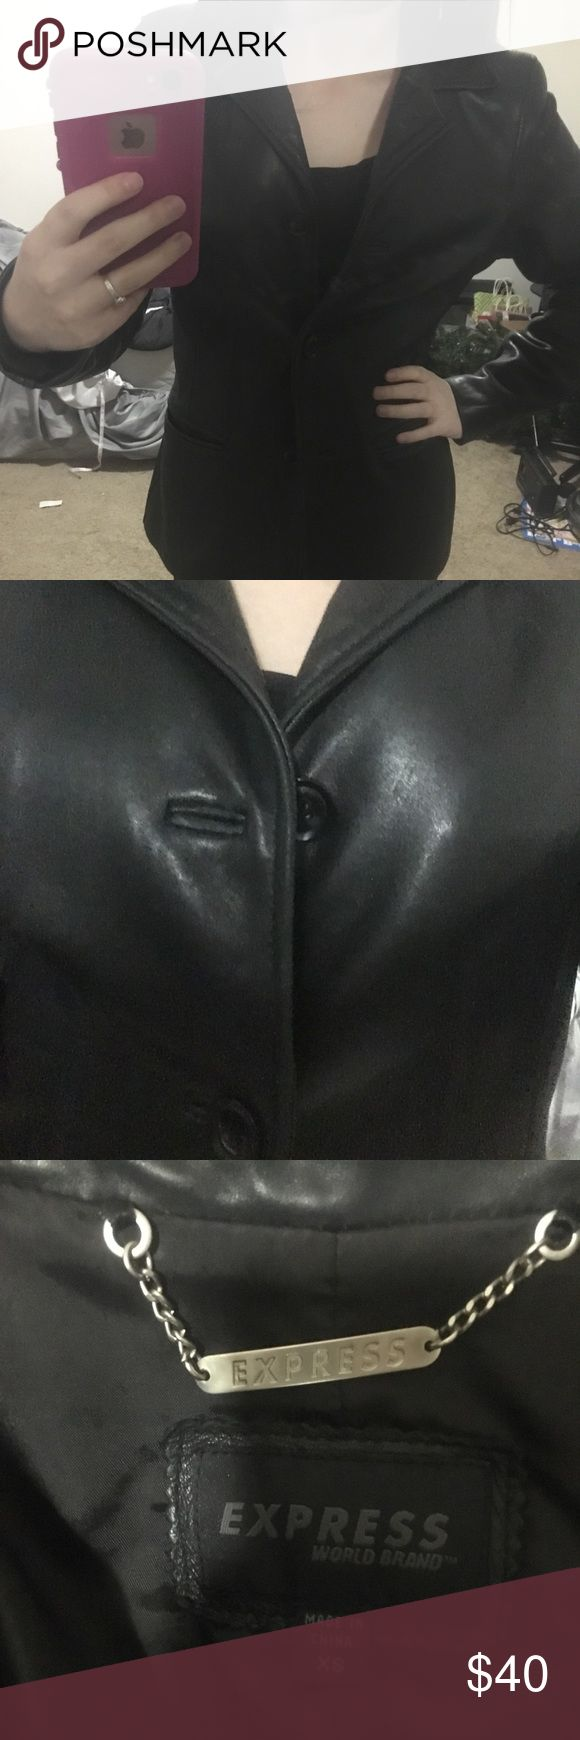 *EUC* EXPRESS Brand Leather Jacket *Also listed on Mercari*  Excellent Used Condition! Worn less than 10 times! Soft , flexible leather makes this jacket very comfortable to wear! Compliments most any look from day to night!  ***This item will NOT come from a smoke free or pet free home. I will clean each item as best I can before shipping, but I cannot guarantee that it will be free from any traces of cat hair or a smoky odor. Please do not give me a bad rating for this! Thanks in…